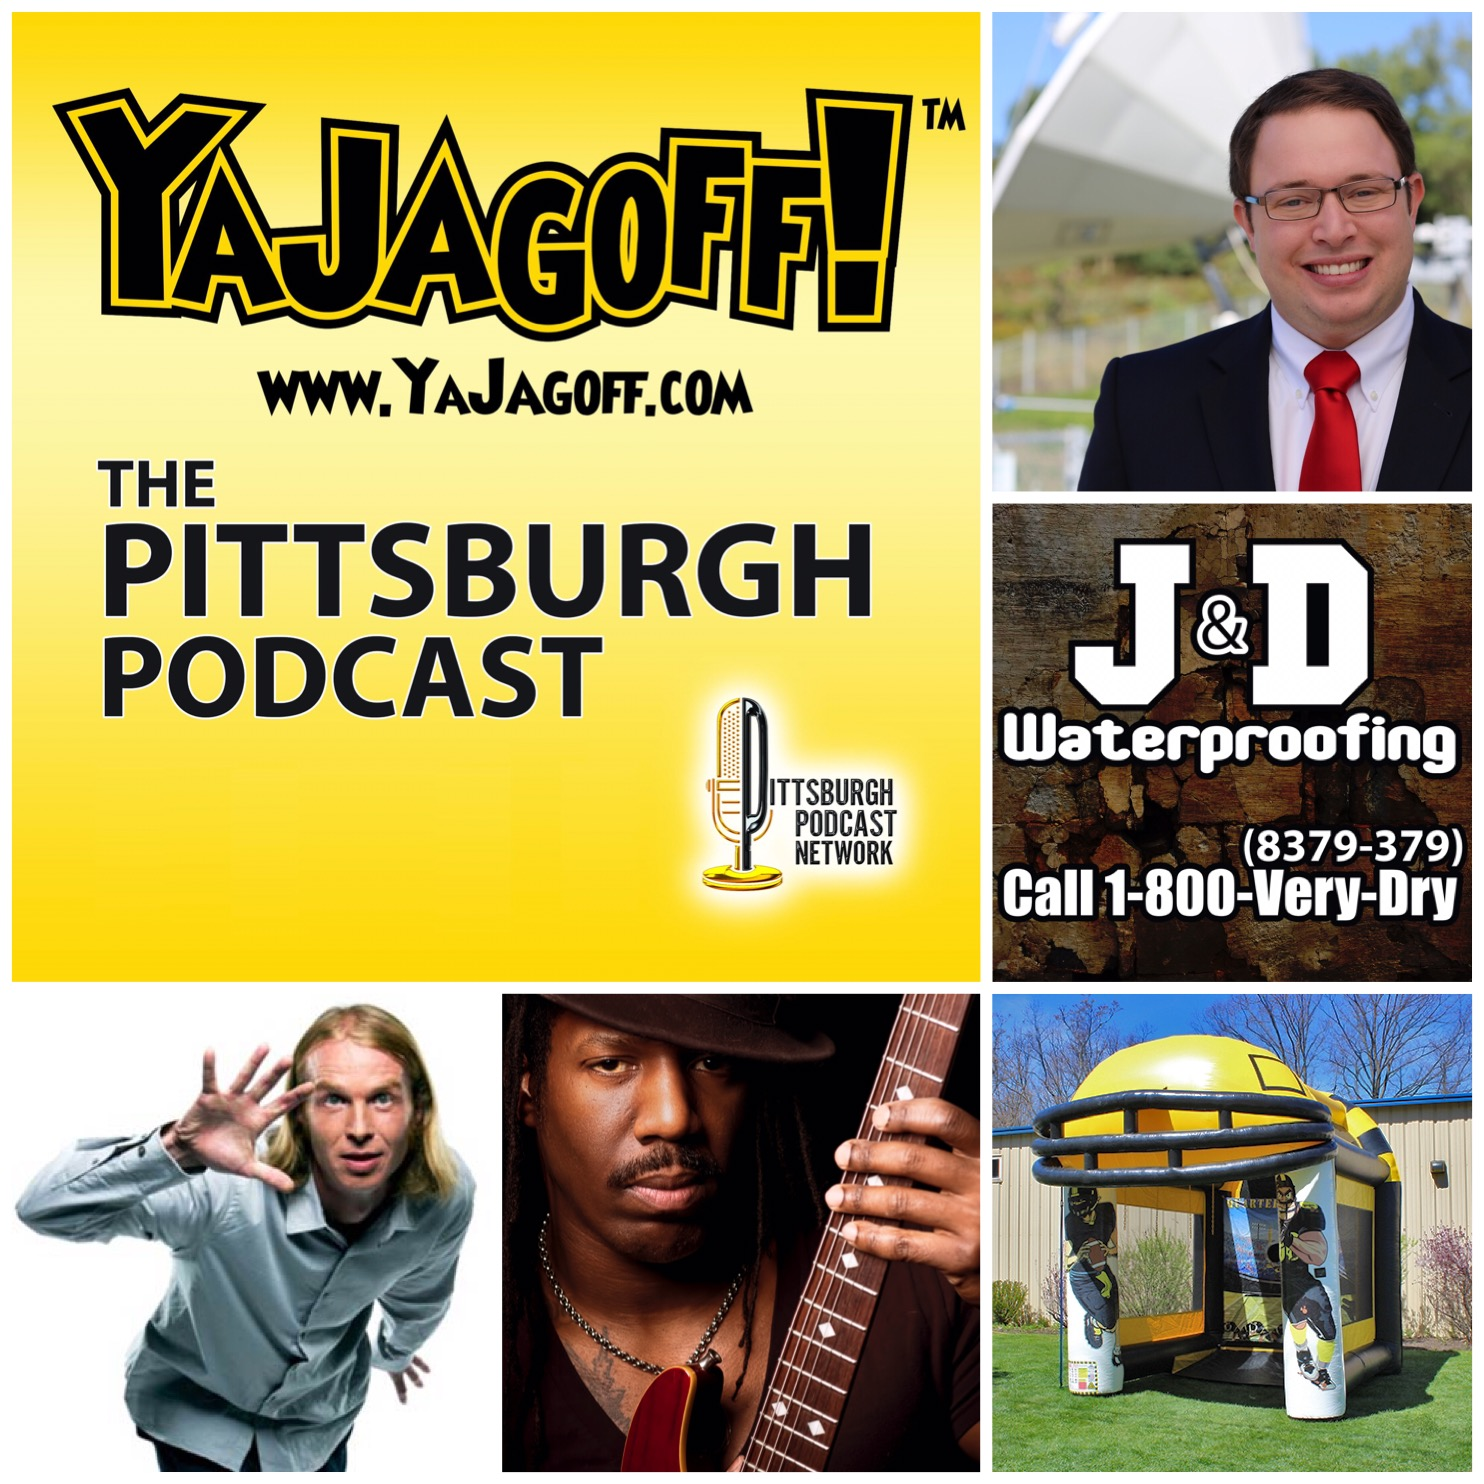 The First J & D Waterproofing YaJagoff Podcast Porch Tour Winner